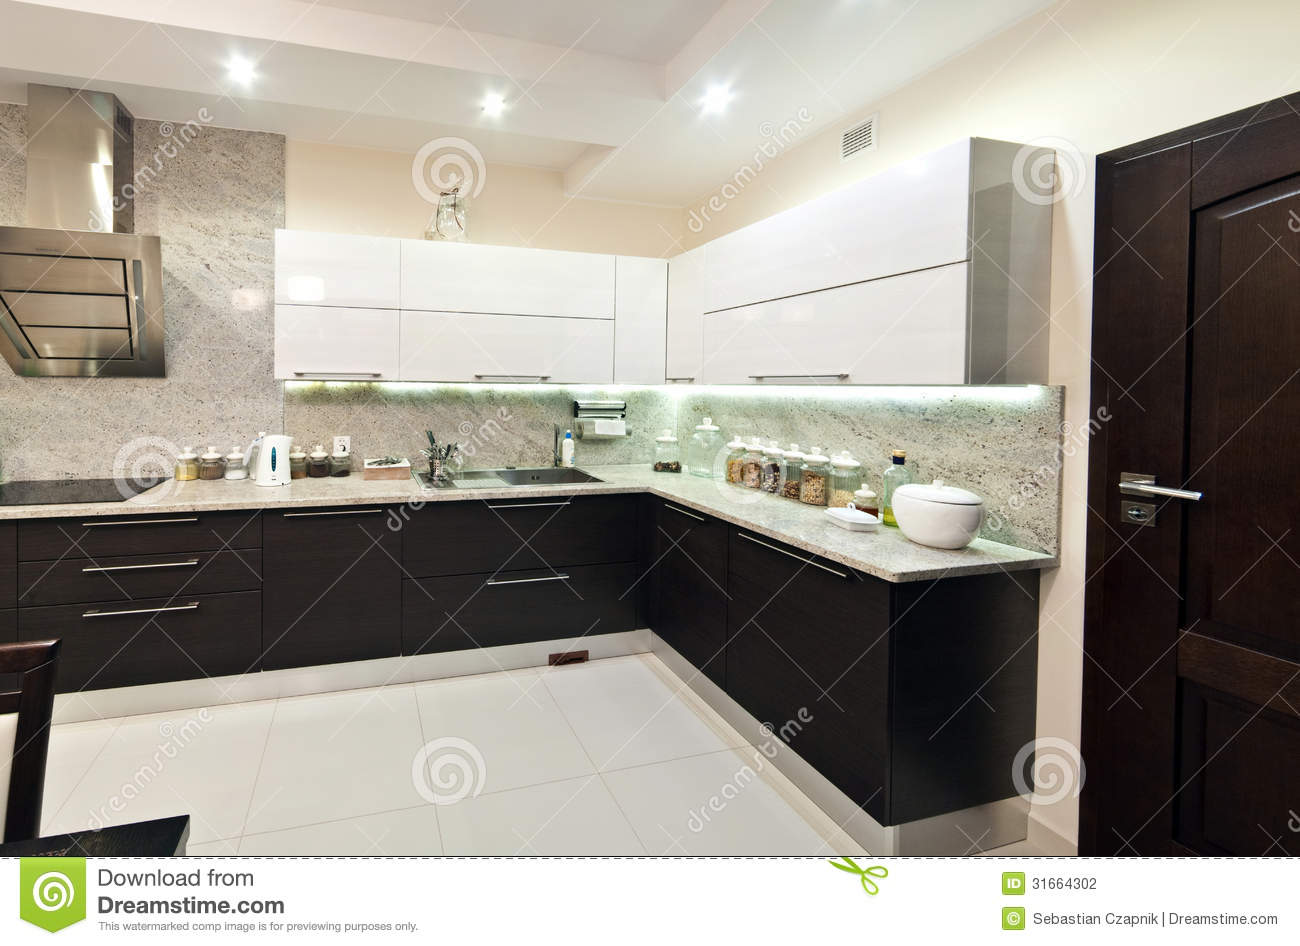 Amazing Ultra Modern House For Spacious And Stylish Look Of Your Home as well Ultra Modern Home Phone together with Stock Photography Modern Kitchen View Wide Angle Elegant Furniture Made Dark Brown Wood Image31664302 in addition Orange Kitchen likewise Modern House Plans Of India. on ultra modern home design plans